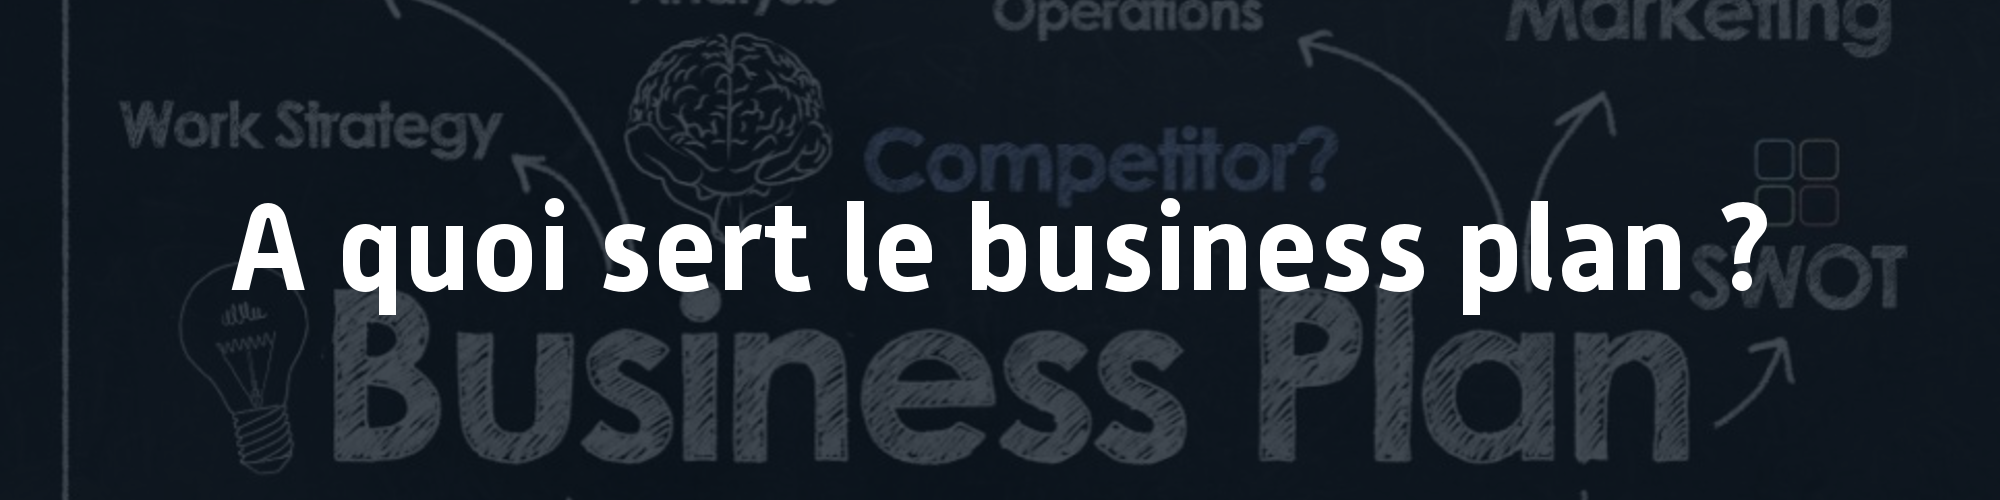 business plan previsionnel financier creation entreprise